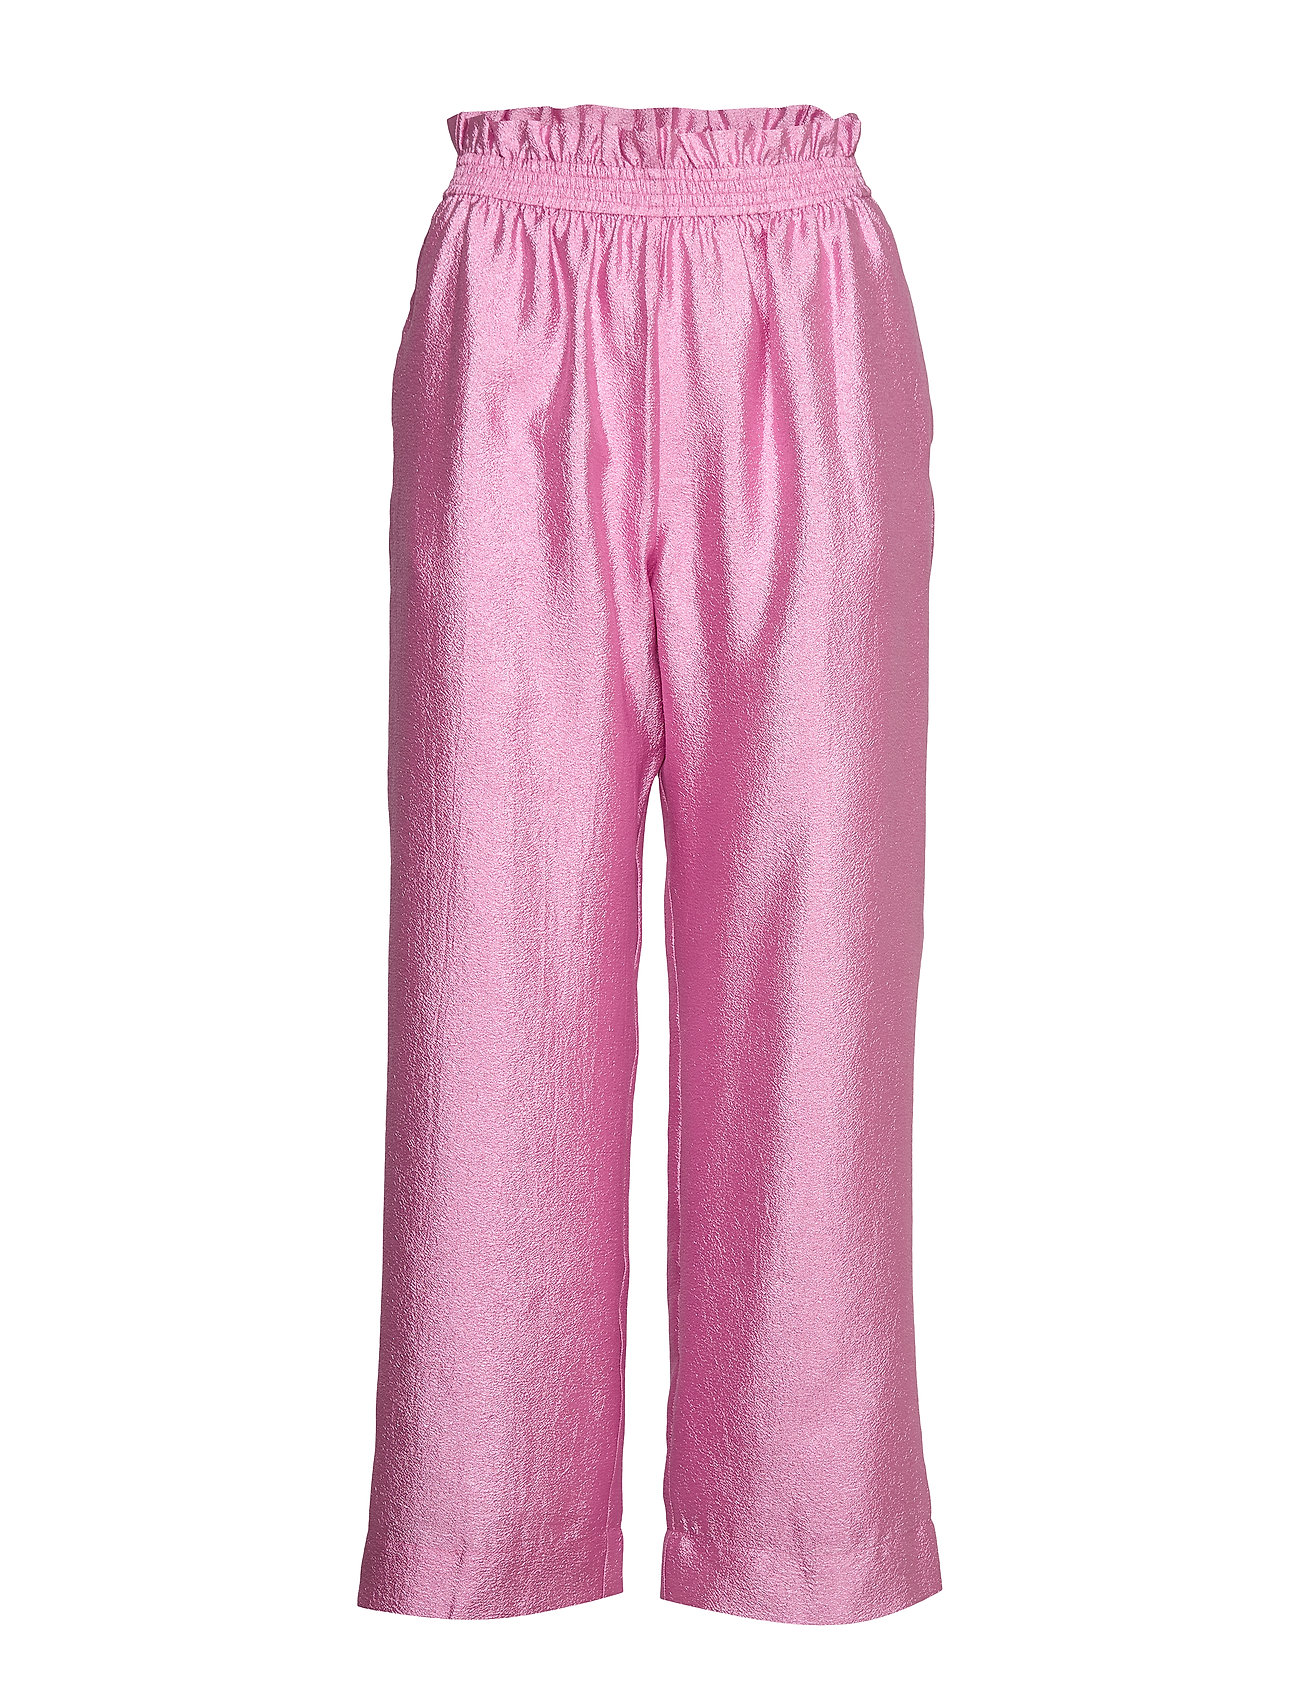 STINE GOYA Andre, 784 Textured Poly - PINK